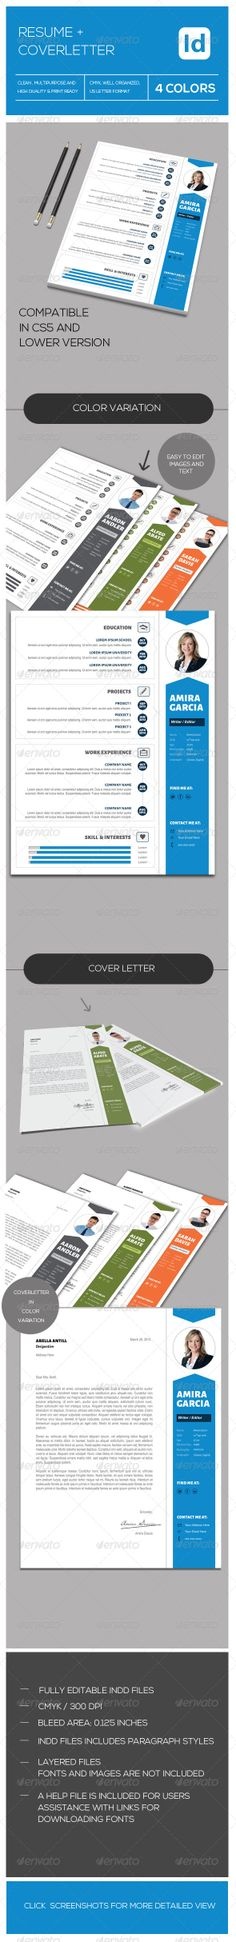 Looking for someone to design and edit your resume? Check out my - architect cover letterhow to write a successful cover